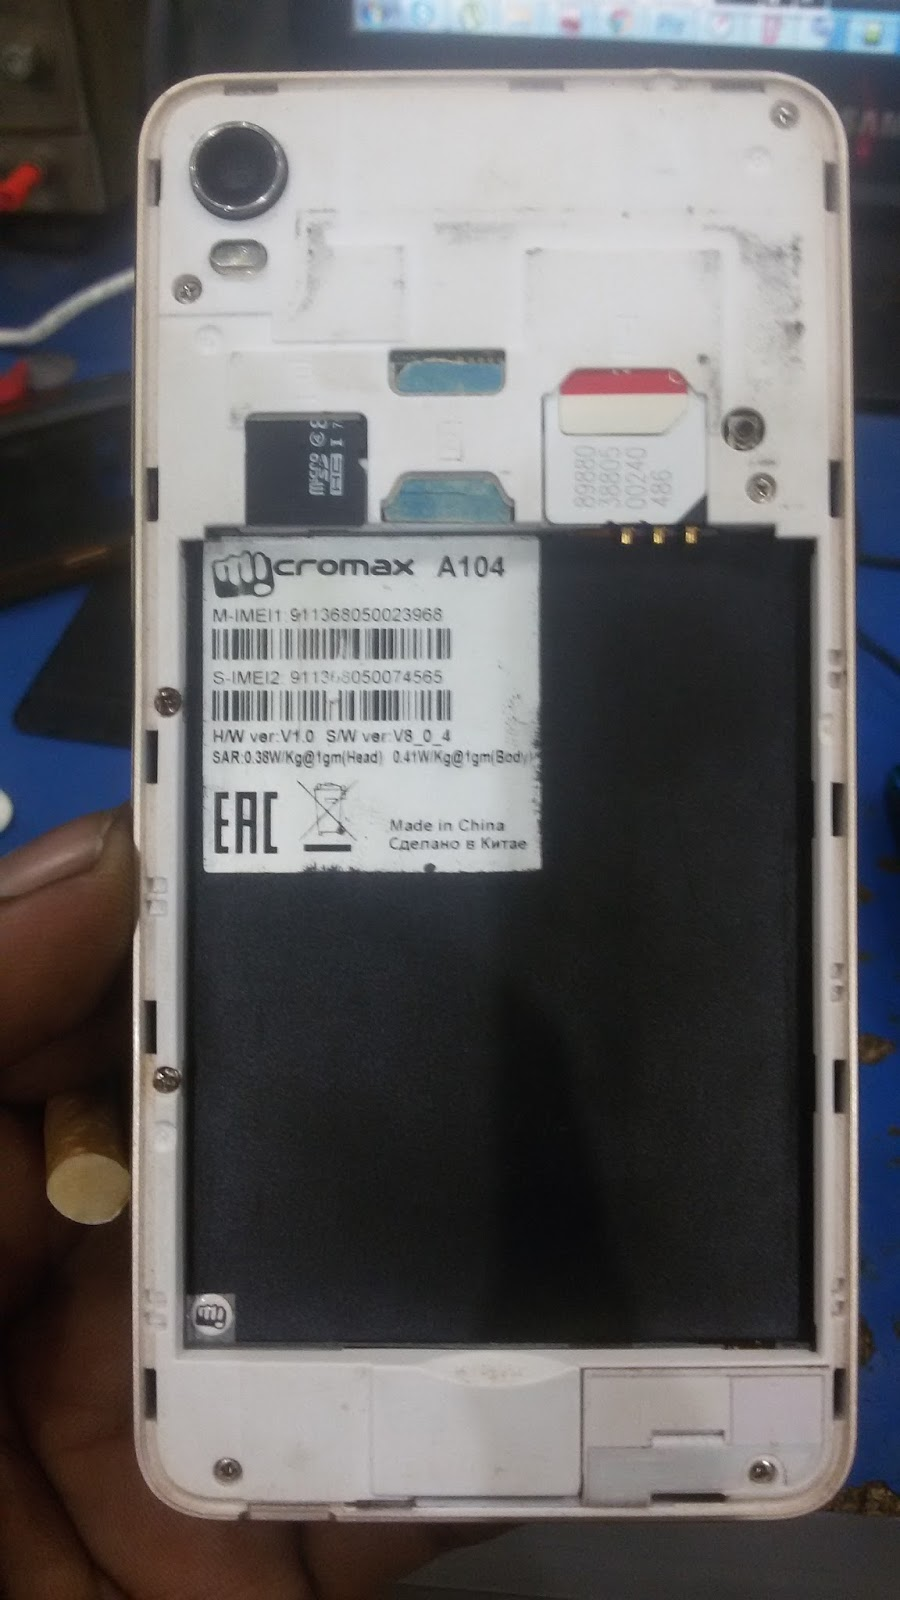 Mmx a104 stock rom